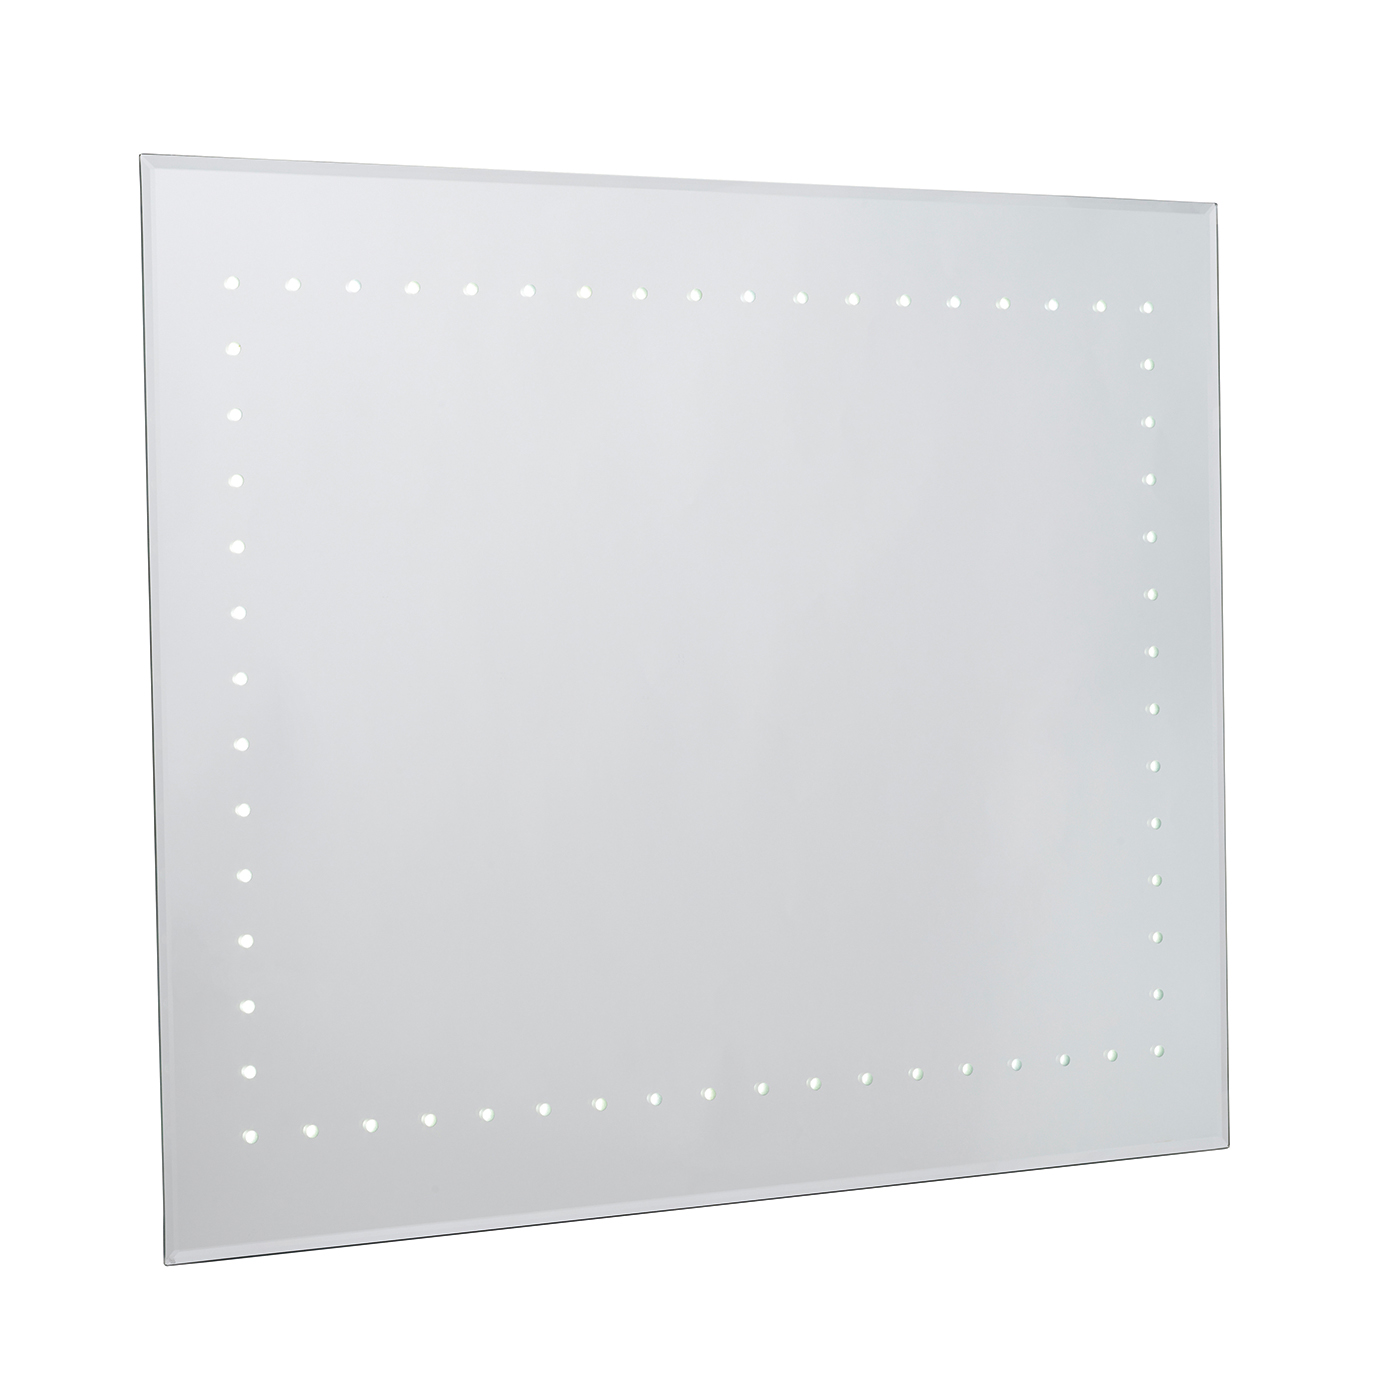 Endon Kalamos LED bathroom mirror IP44 6W demister sensor H: 670mm W: 800mm